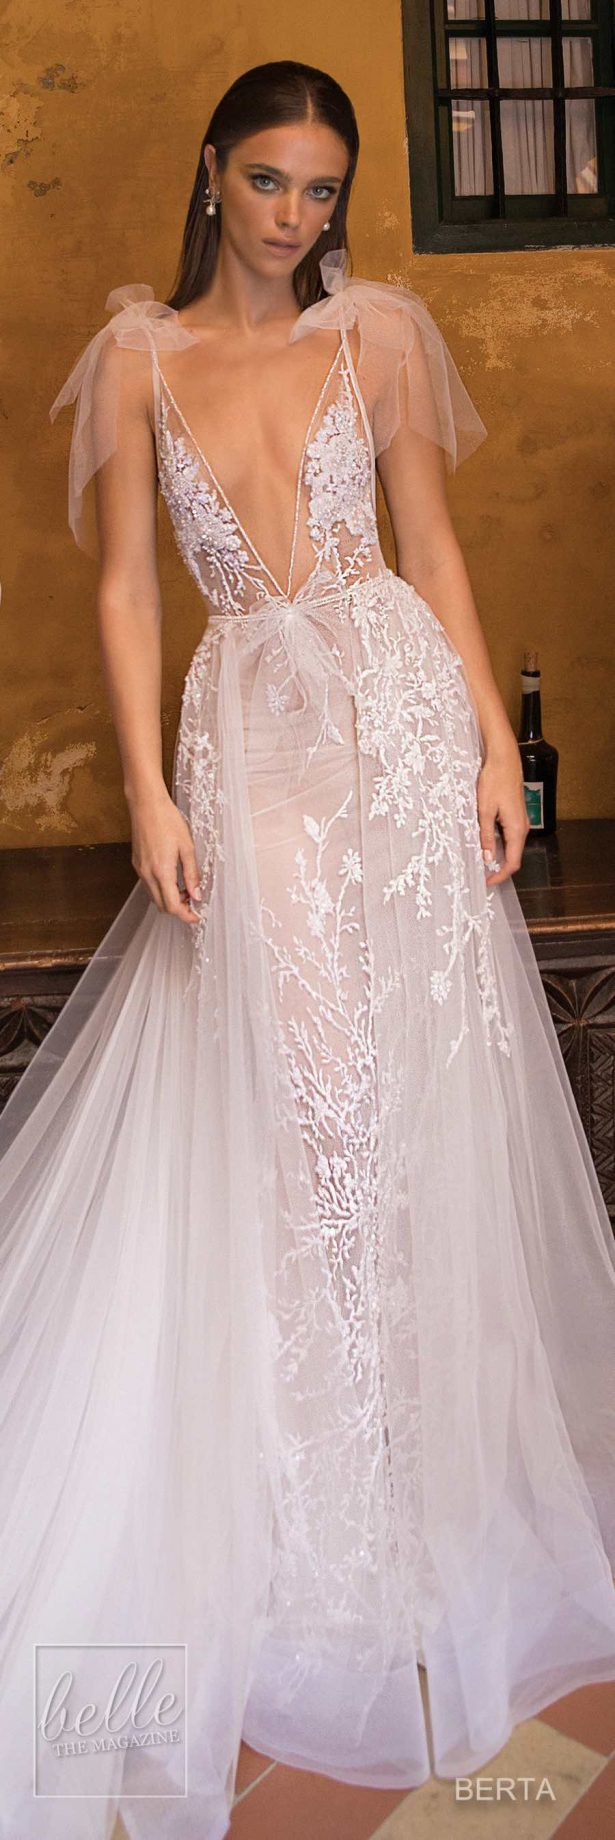 Berta Seville Wedding Dress Collection #weddingdress #bridalgown